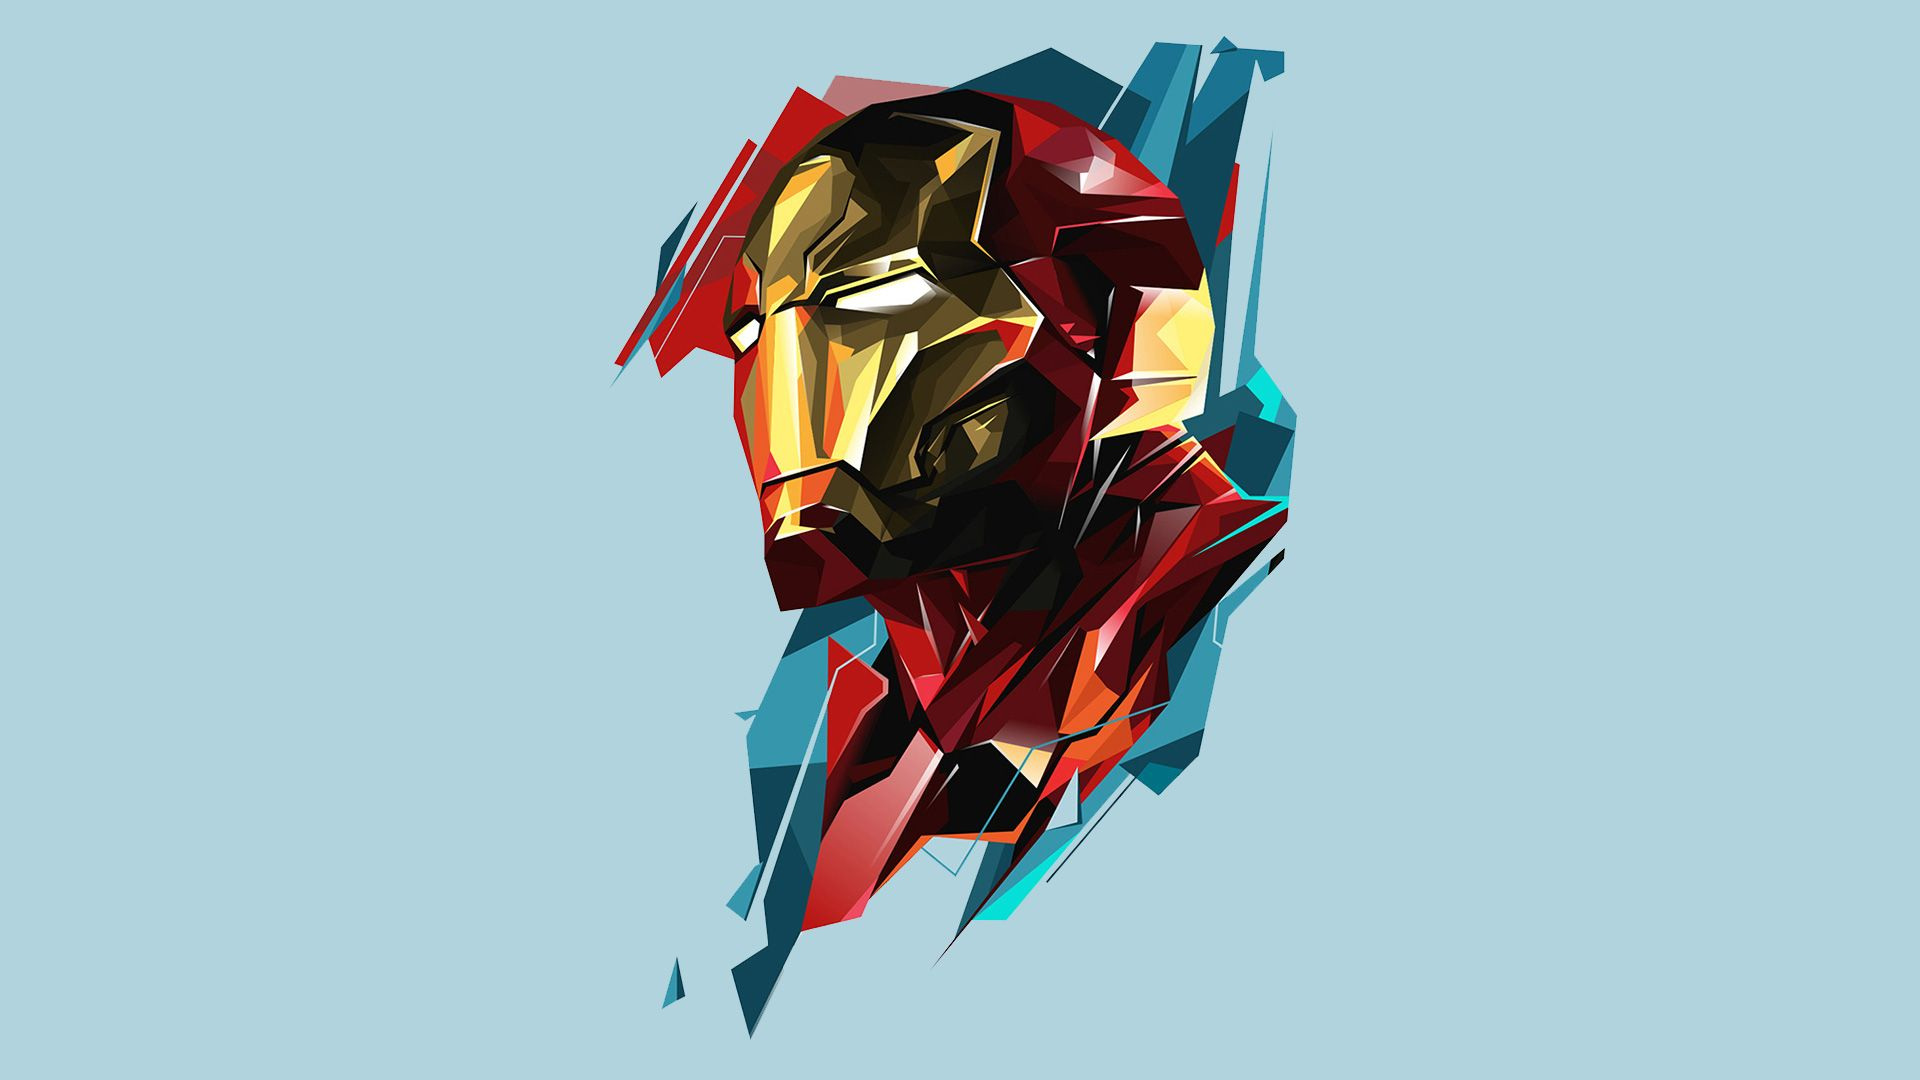 Marvel Art Wallpapers Top Free Marvel Art Backgrounds Wallpaperaccess